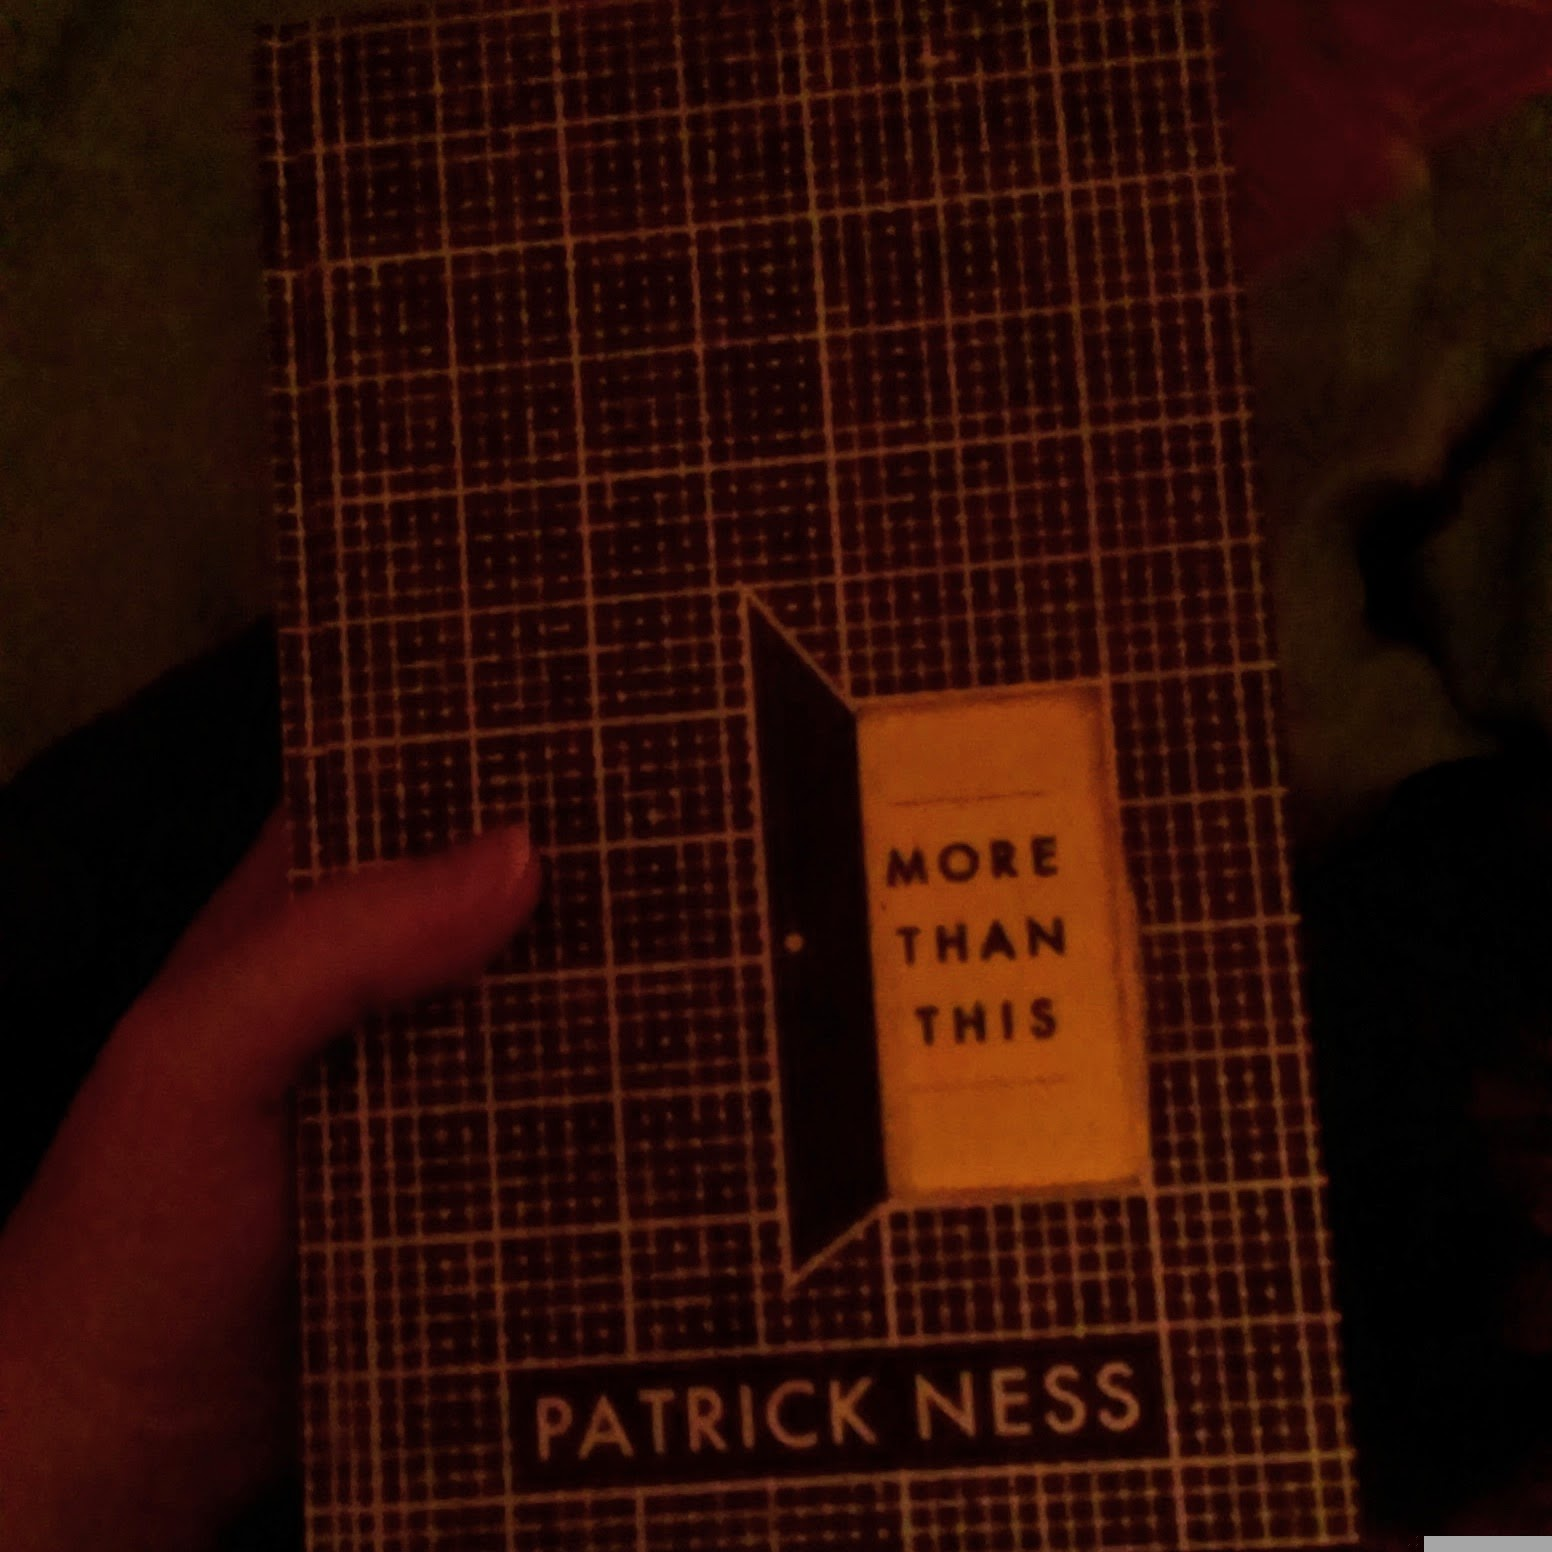 11pm - Currently reading (More Than This by Patrick Ness)